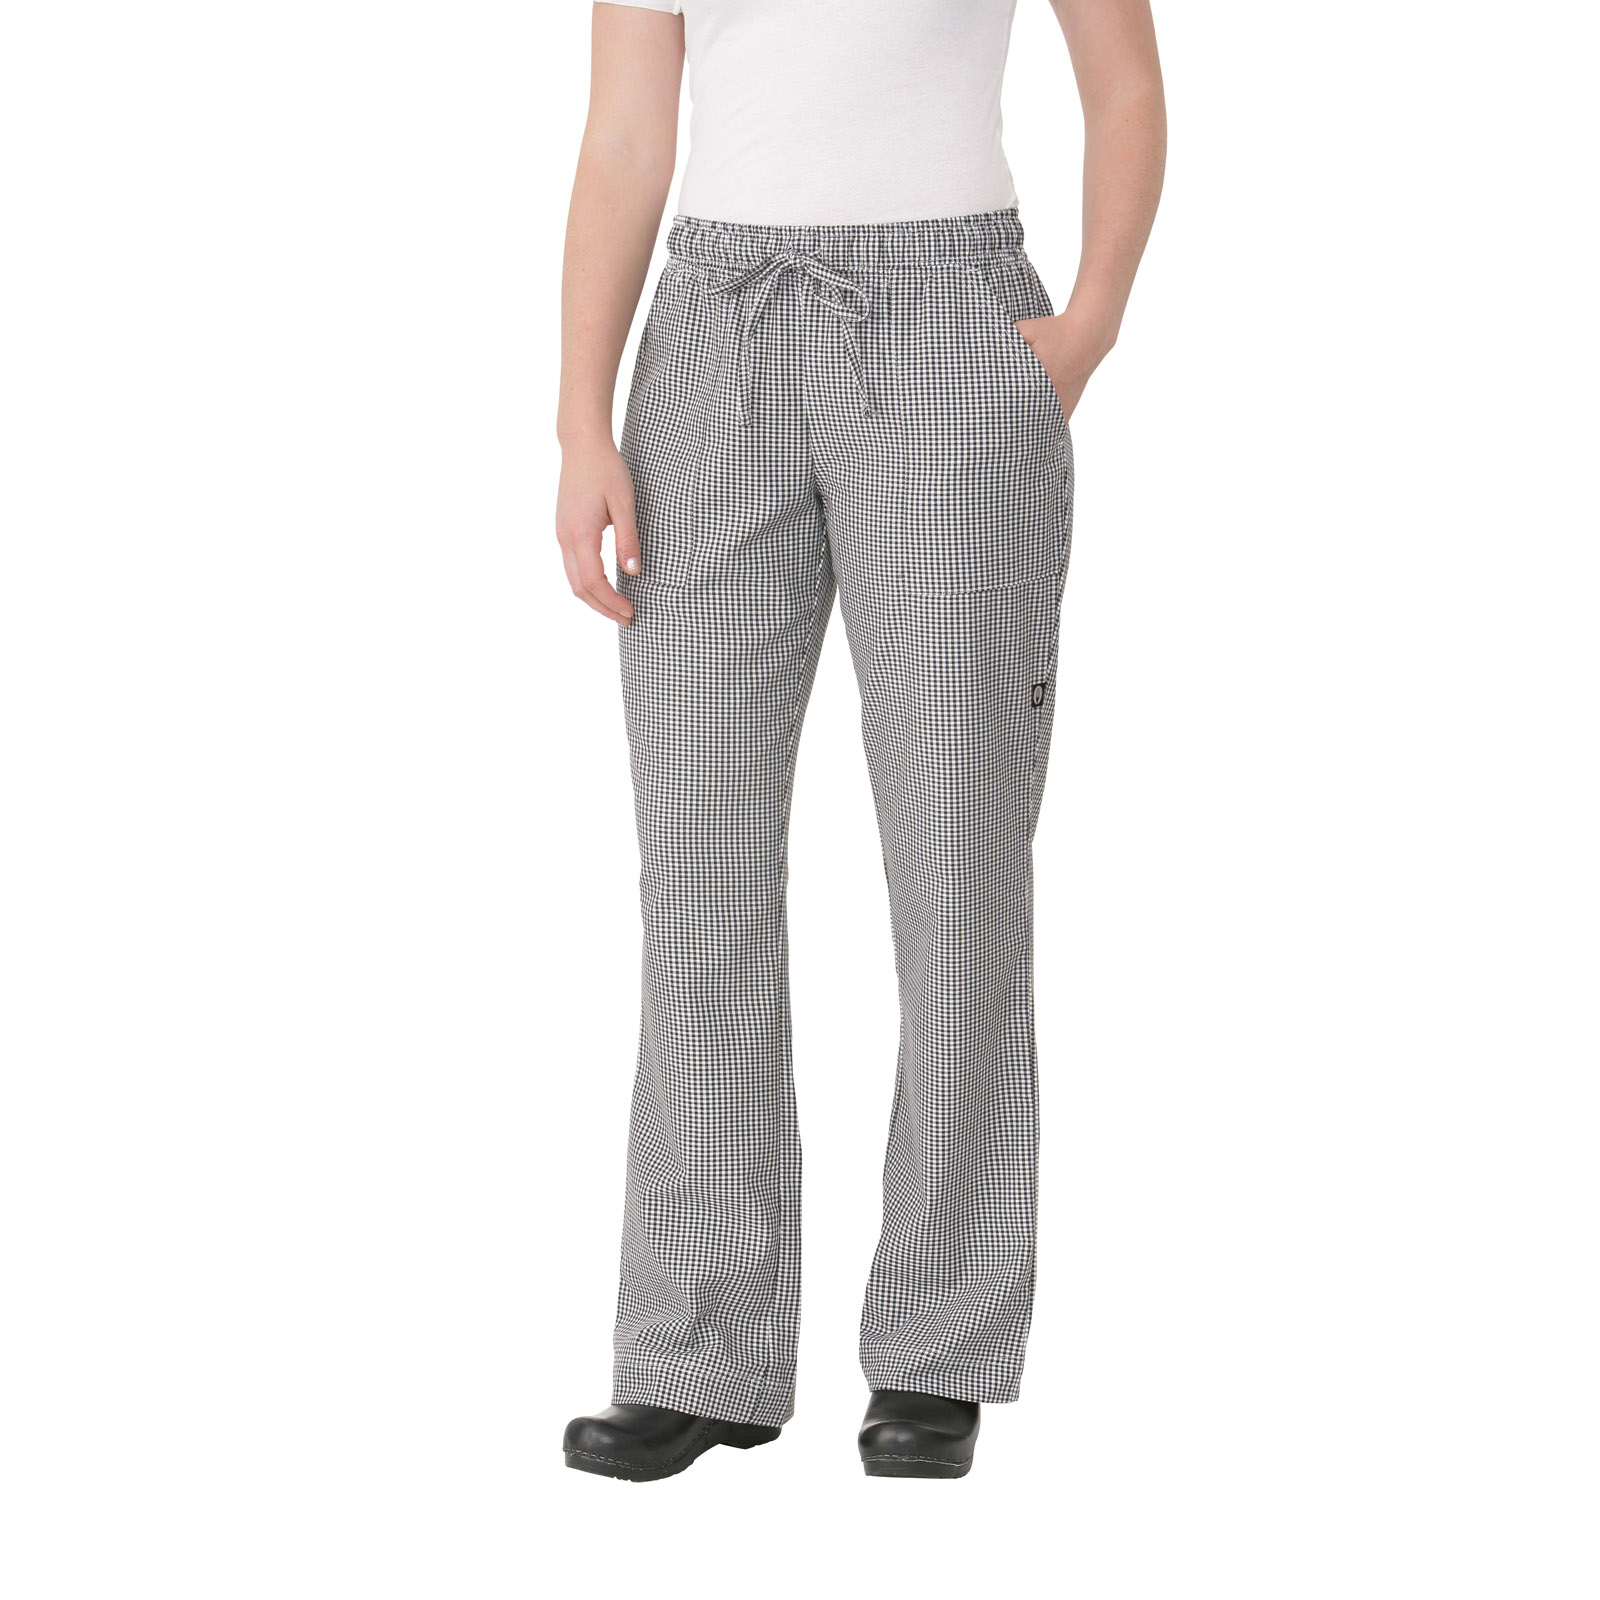 Chef Works WBAW0002XL chef's pants